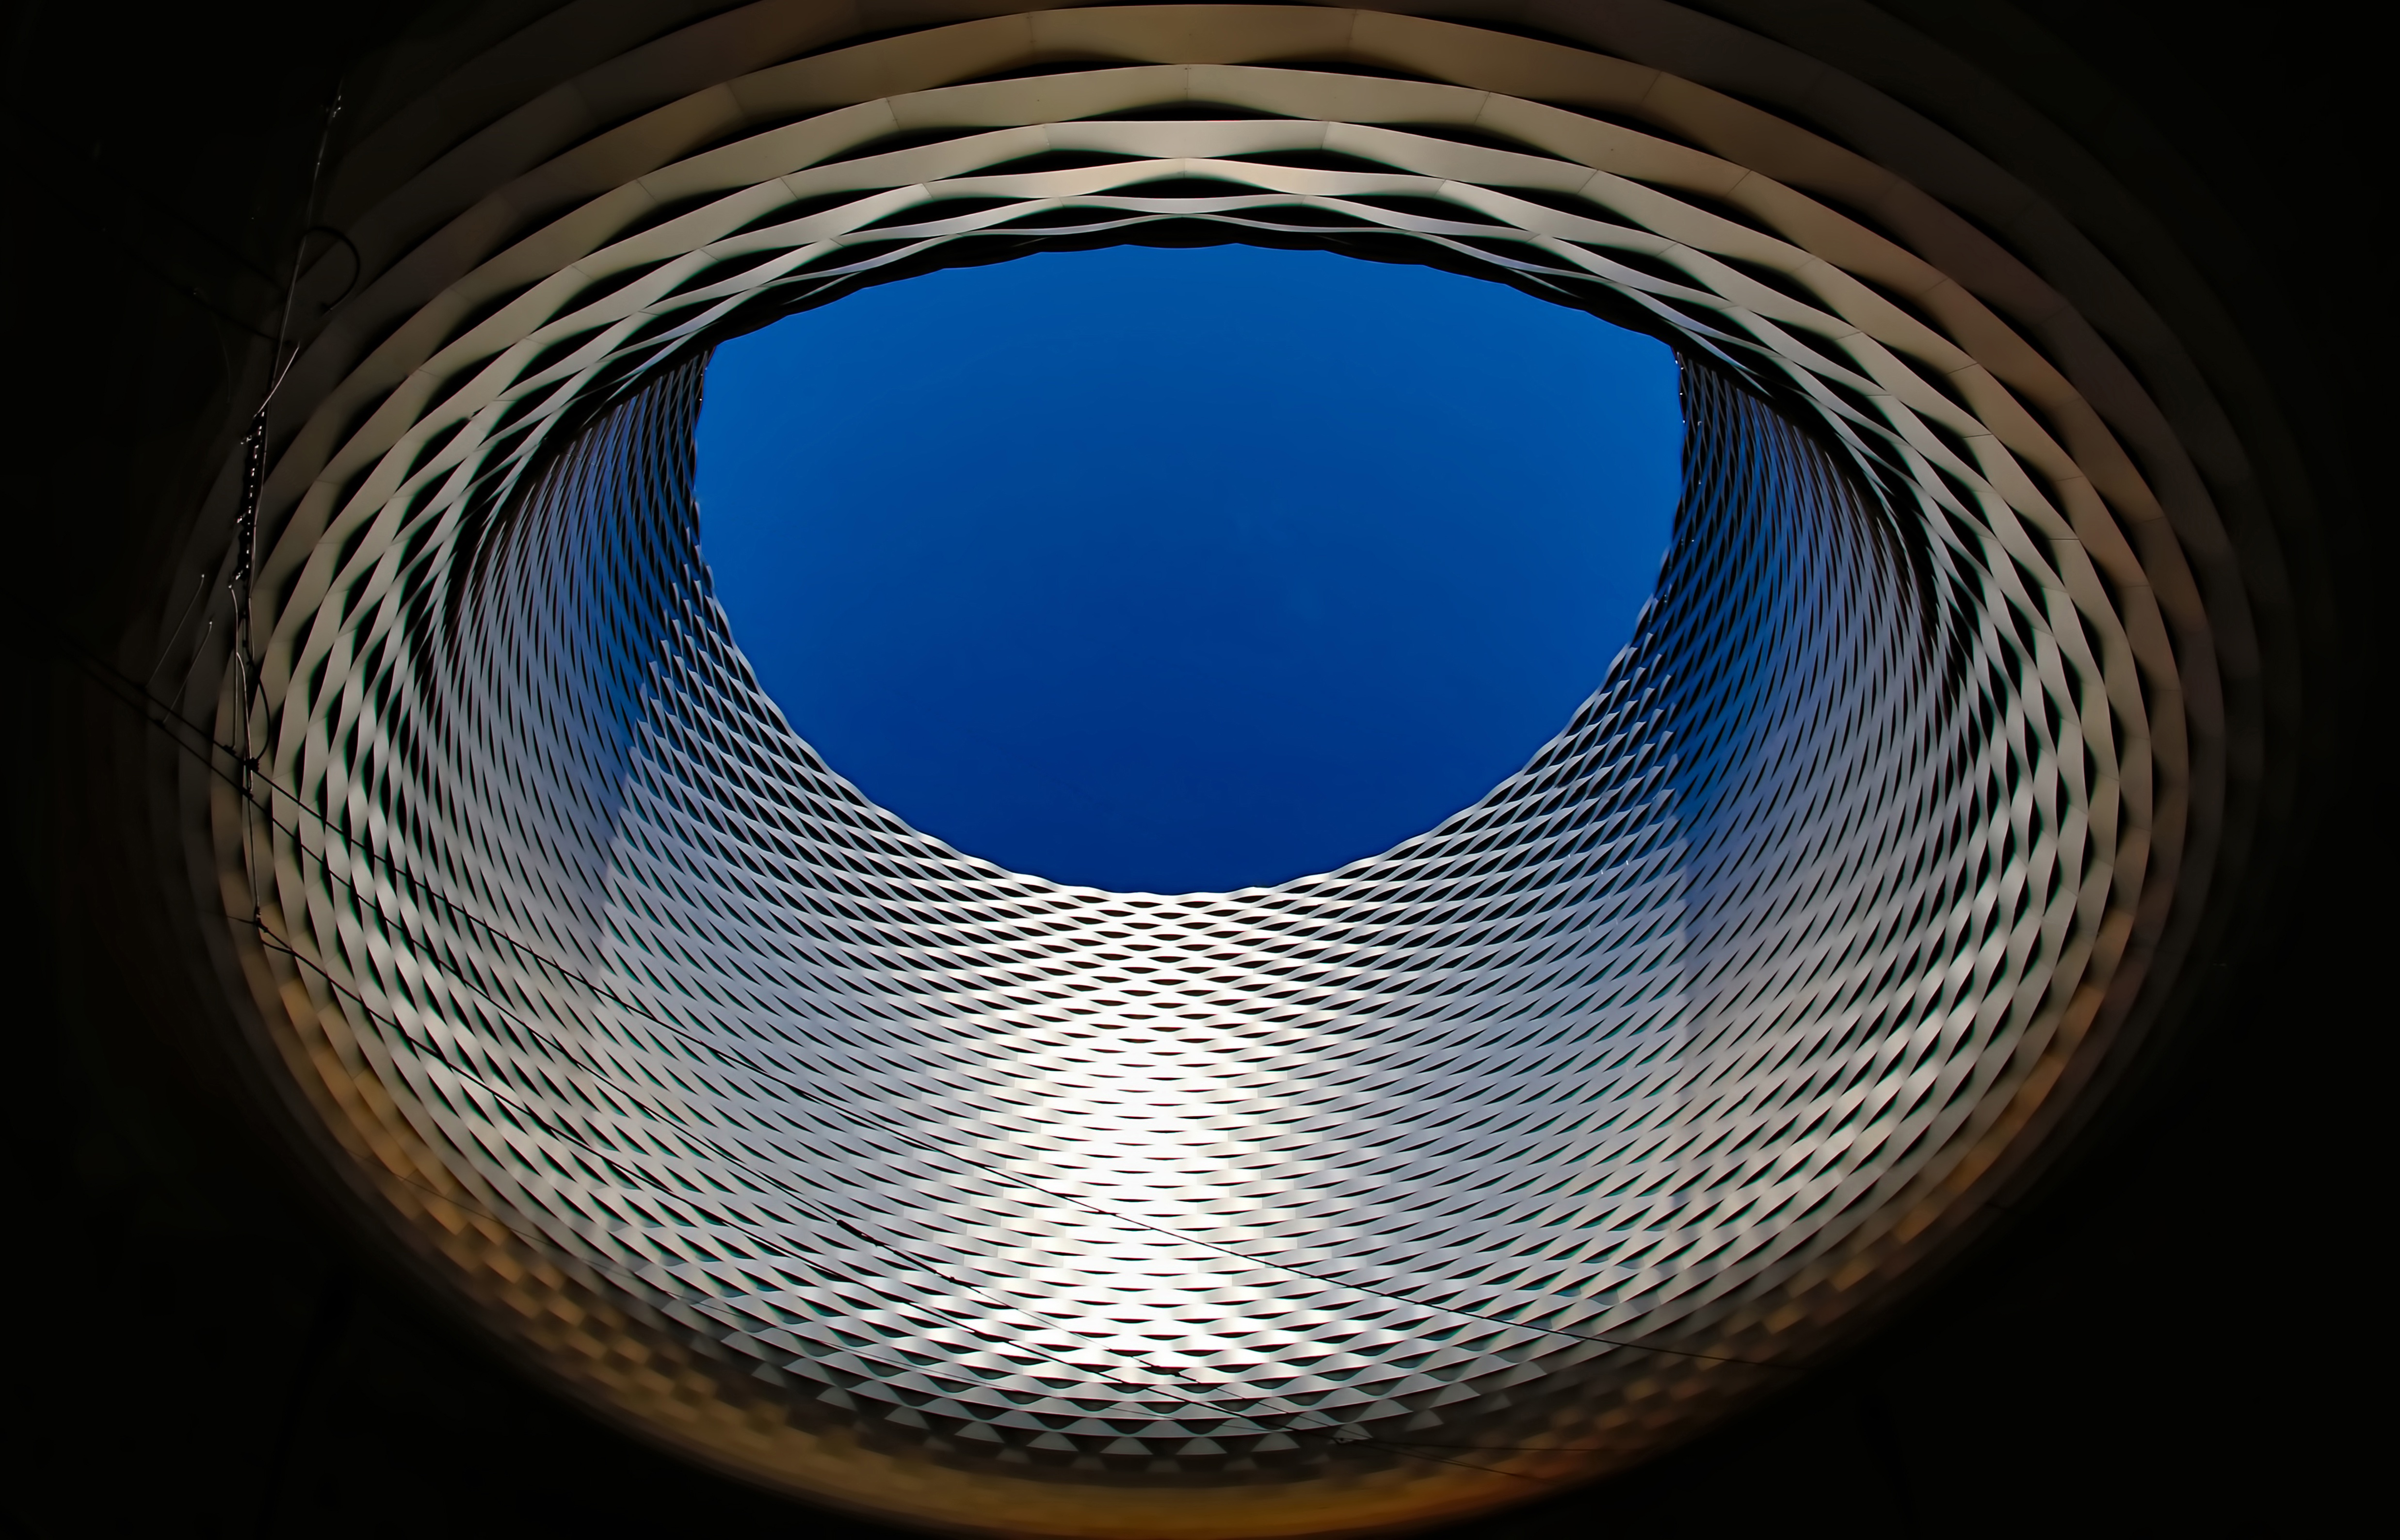 circle_grid_sky_architecture_115633_4949x3176